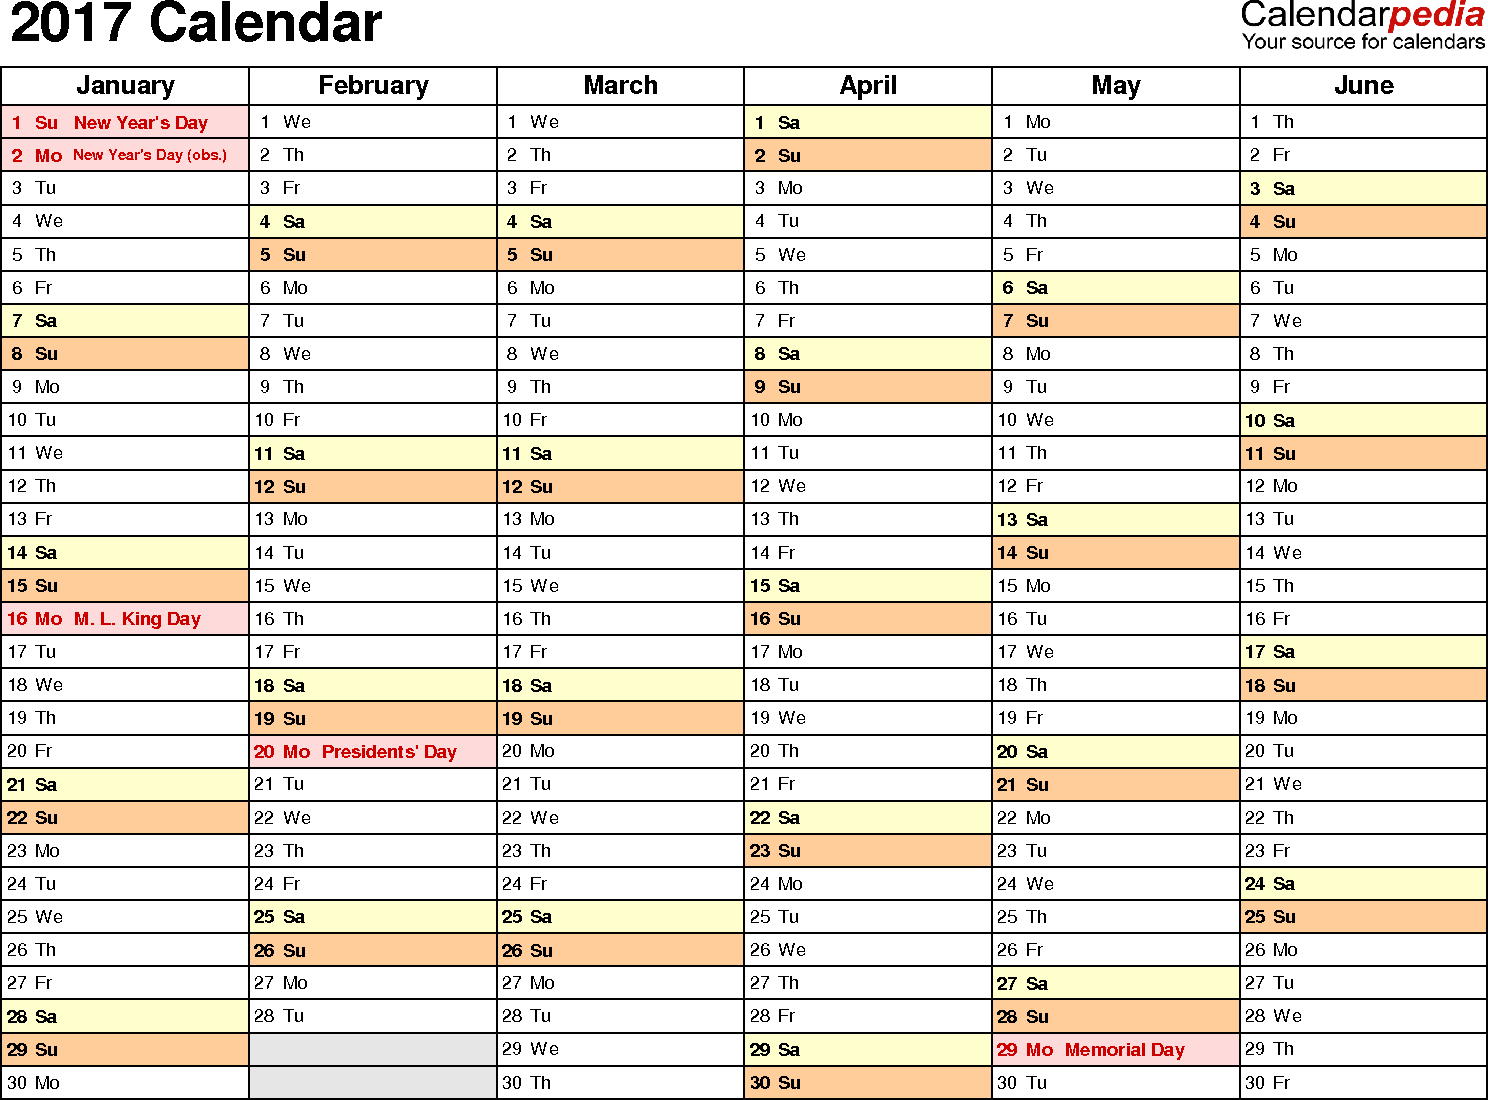 Ediblewildsus  Picturesque  Calendar  Download  Free Printable Excel Templates Xls With Glamorous Template   Calendar For Excel Months Horizontally  Pages Landscape Orientation With Extraordinary How To Make Bullet Points In Excel Also How To Merge Excel Files Into One In Addition Add Developer Tab Excel And Tone Excel As Well As Calculate Percentage Increase Excel Additionally How To Unprotect Excel Sheet Without Password From Calendarpediacom With Ediblewildsus  Glamorous  Calendar  Download  Free Printable Excel Templates Xls With Extraordinary Template   Calendar For Excel Months Horizontally  Pages Landscape Orientation And Picturesque How To Make Bullet Points In Excel Also How To Merge Excel Files Into One In Addition Add Developer Tab Excel From Calendarpediacom